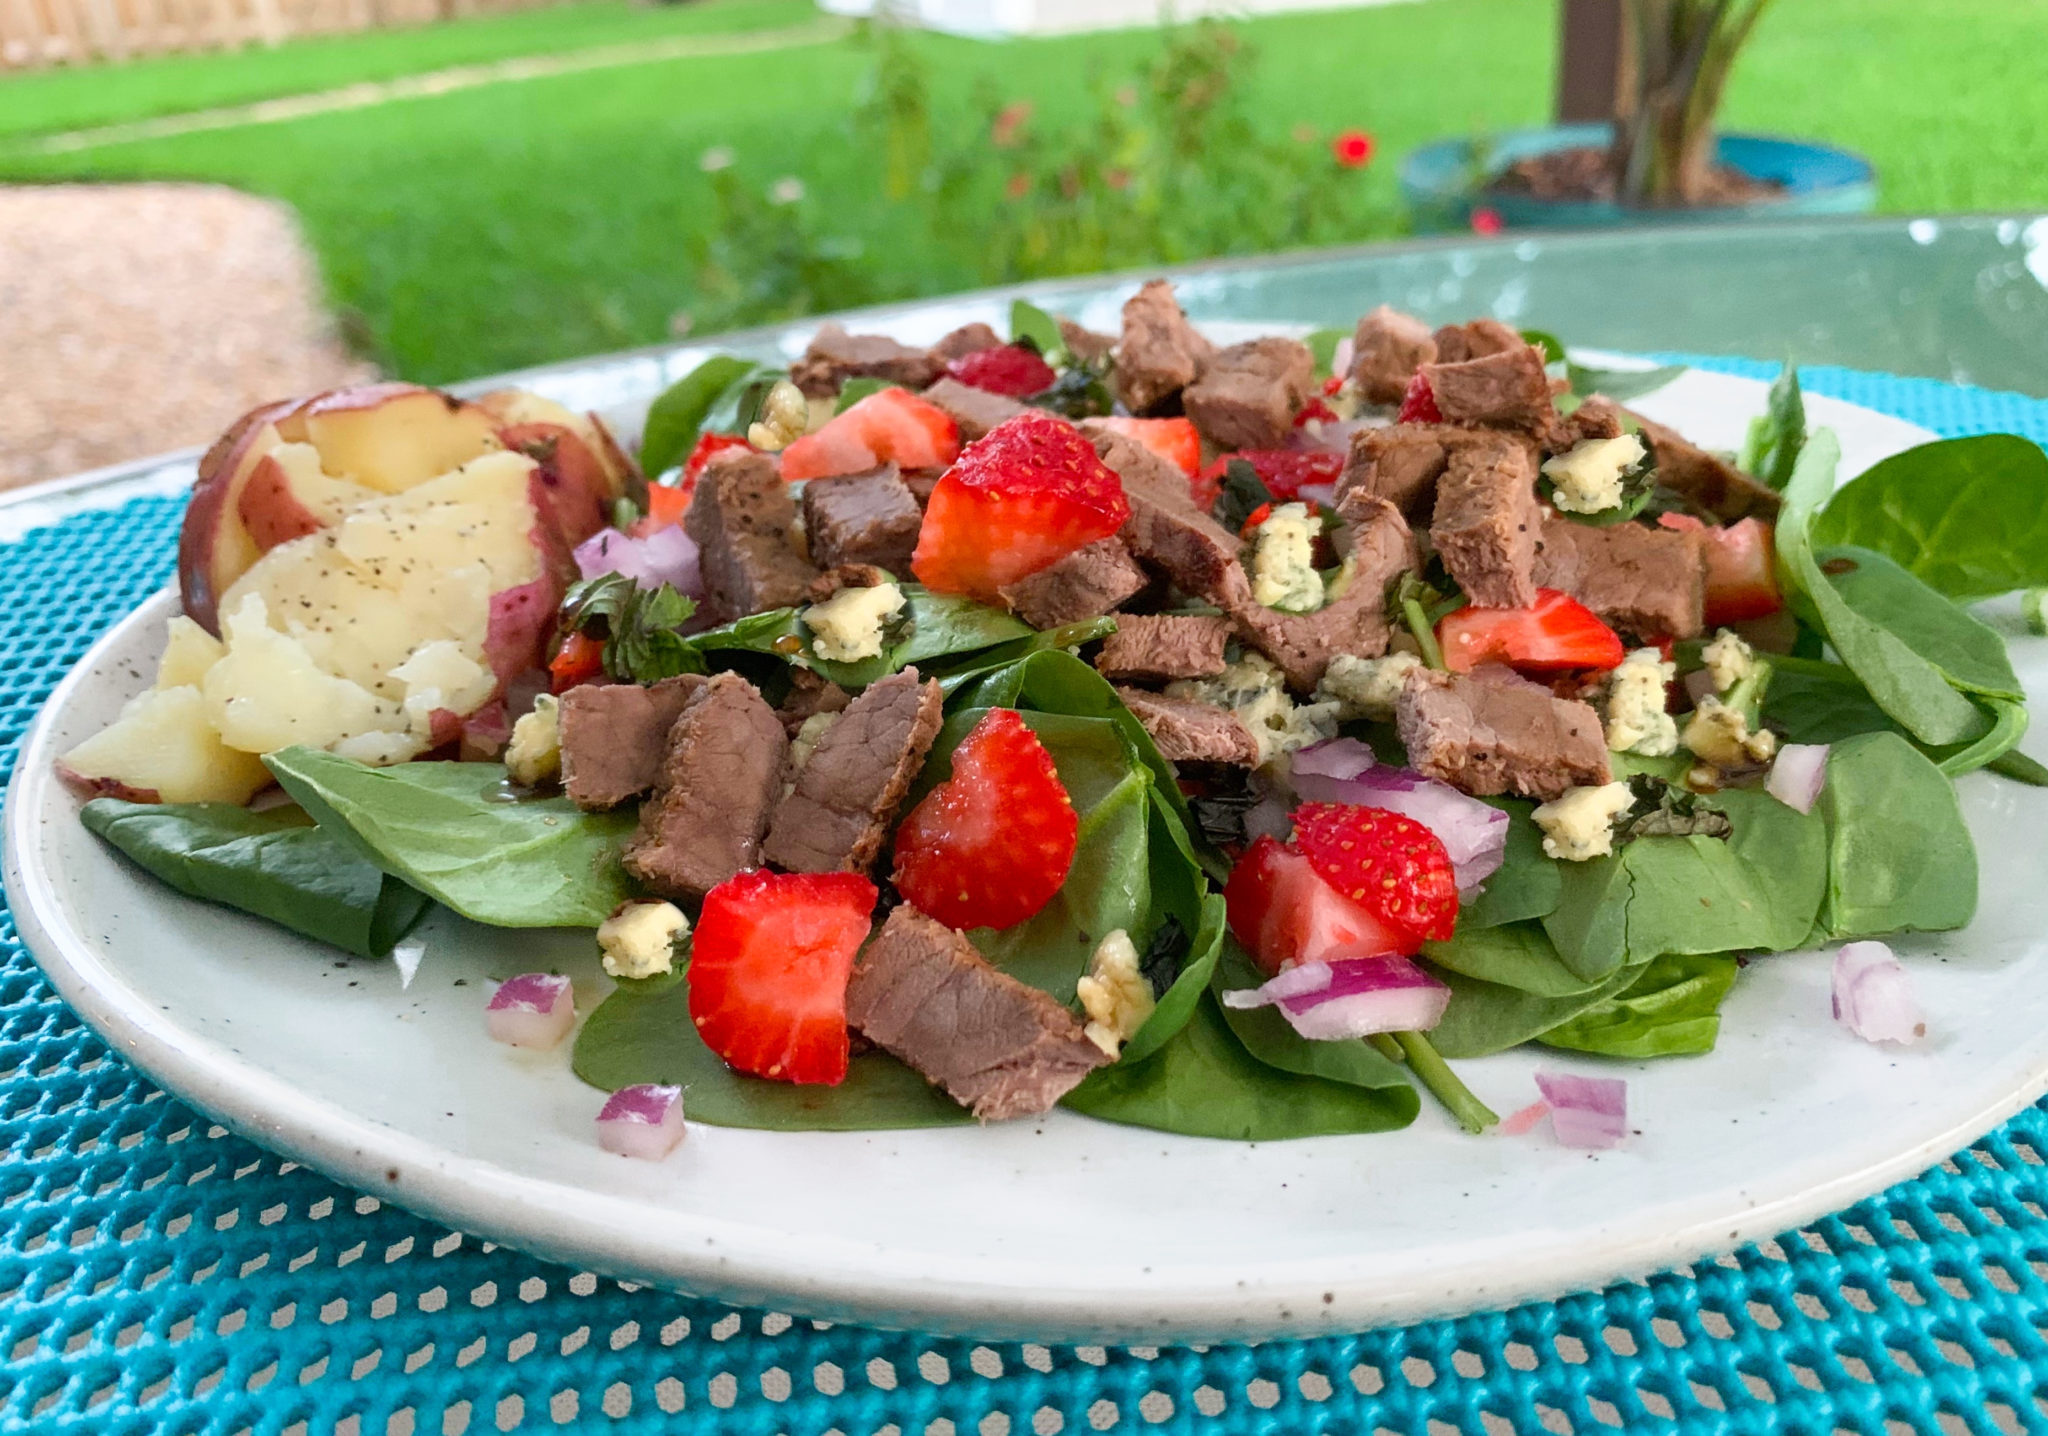 Black and Blue Grilled Steak Salad with Balsamic Dressing